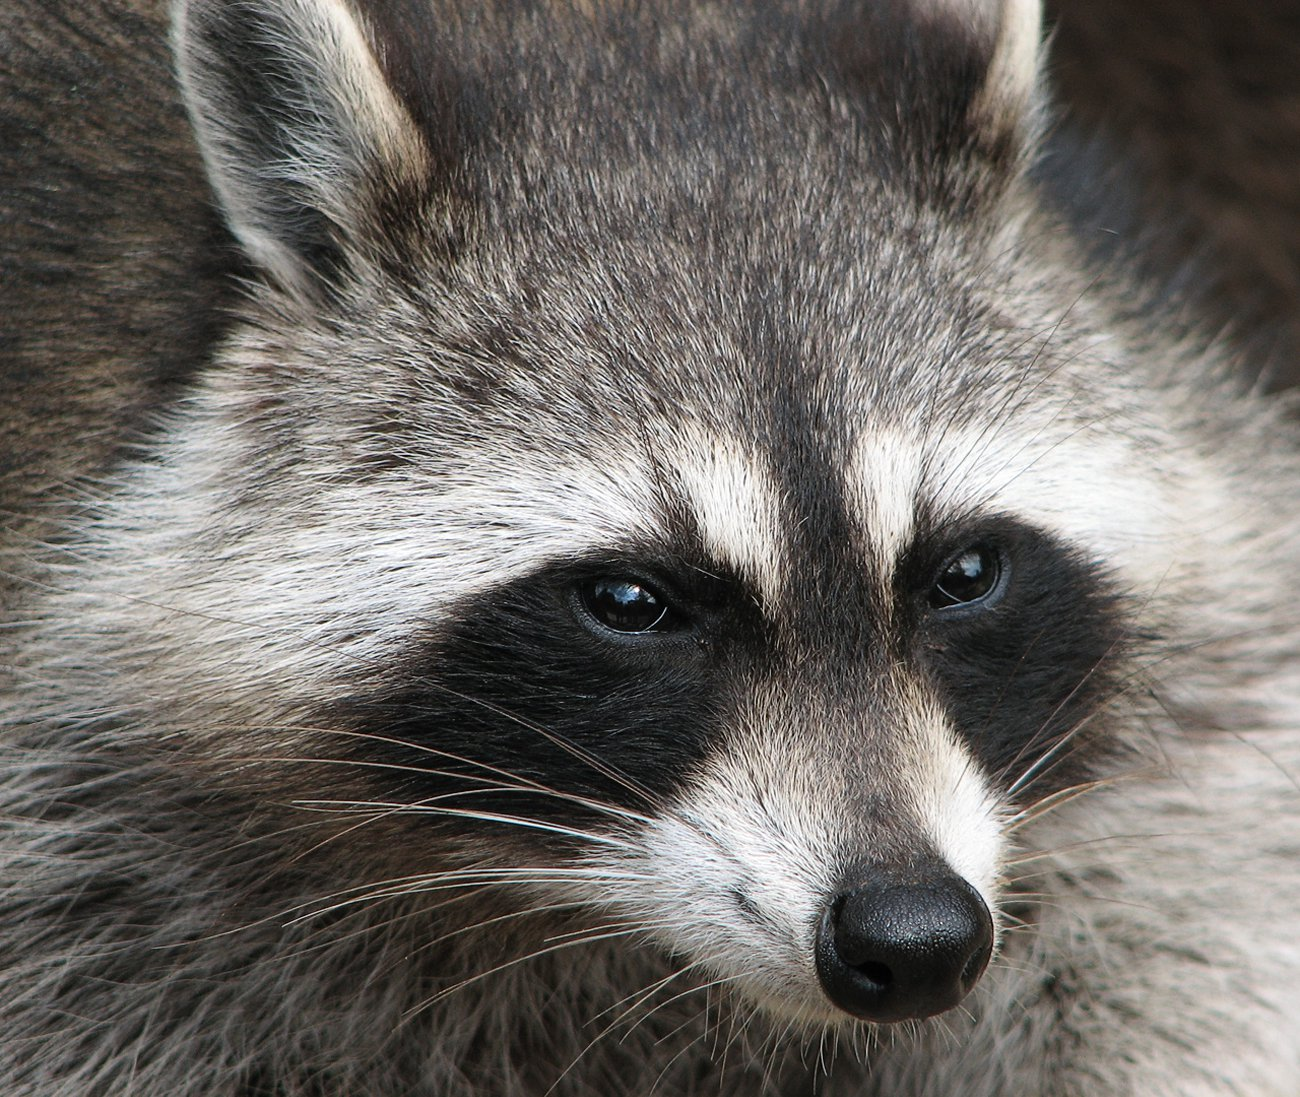 Raccoon stares away from camera and fur is visibly shown.